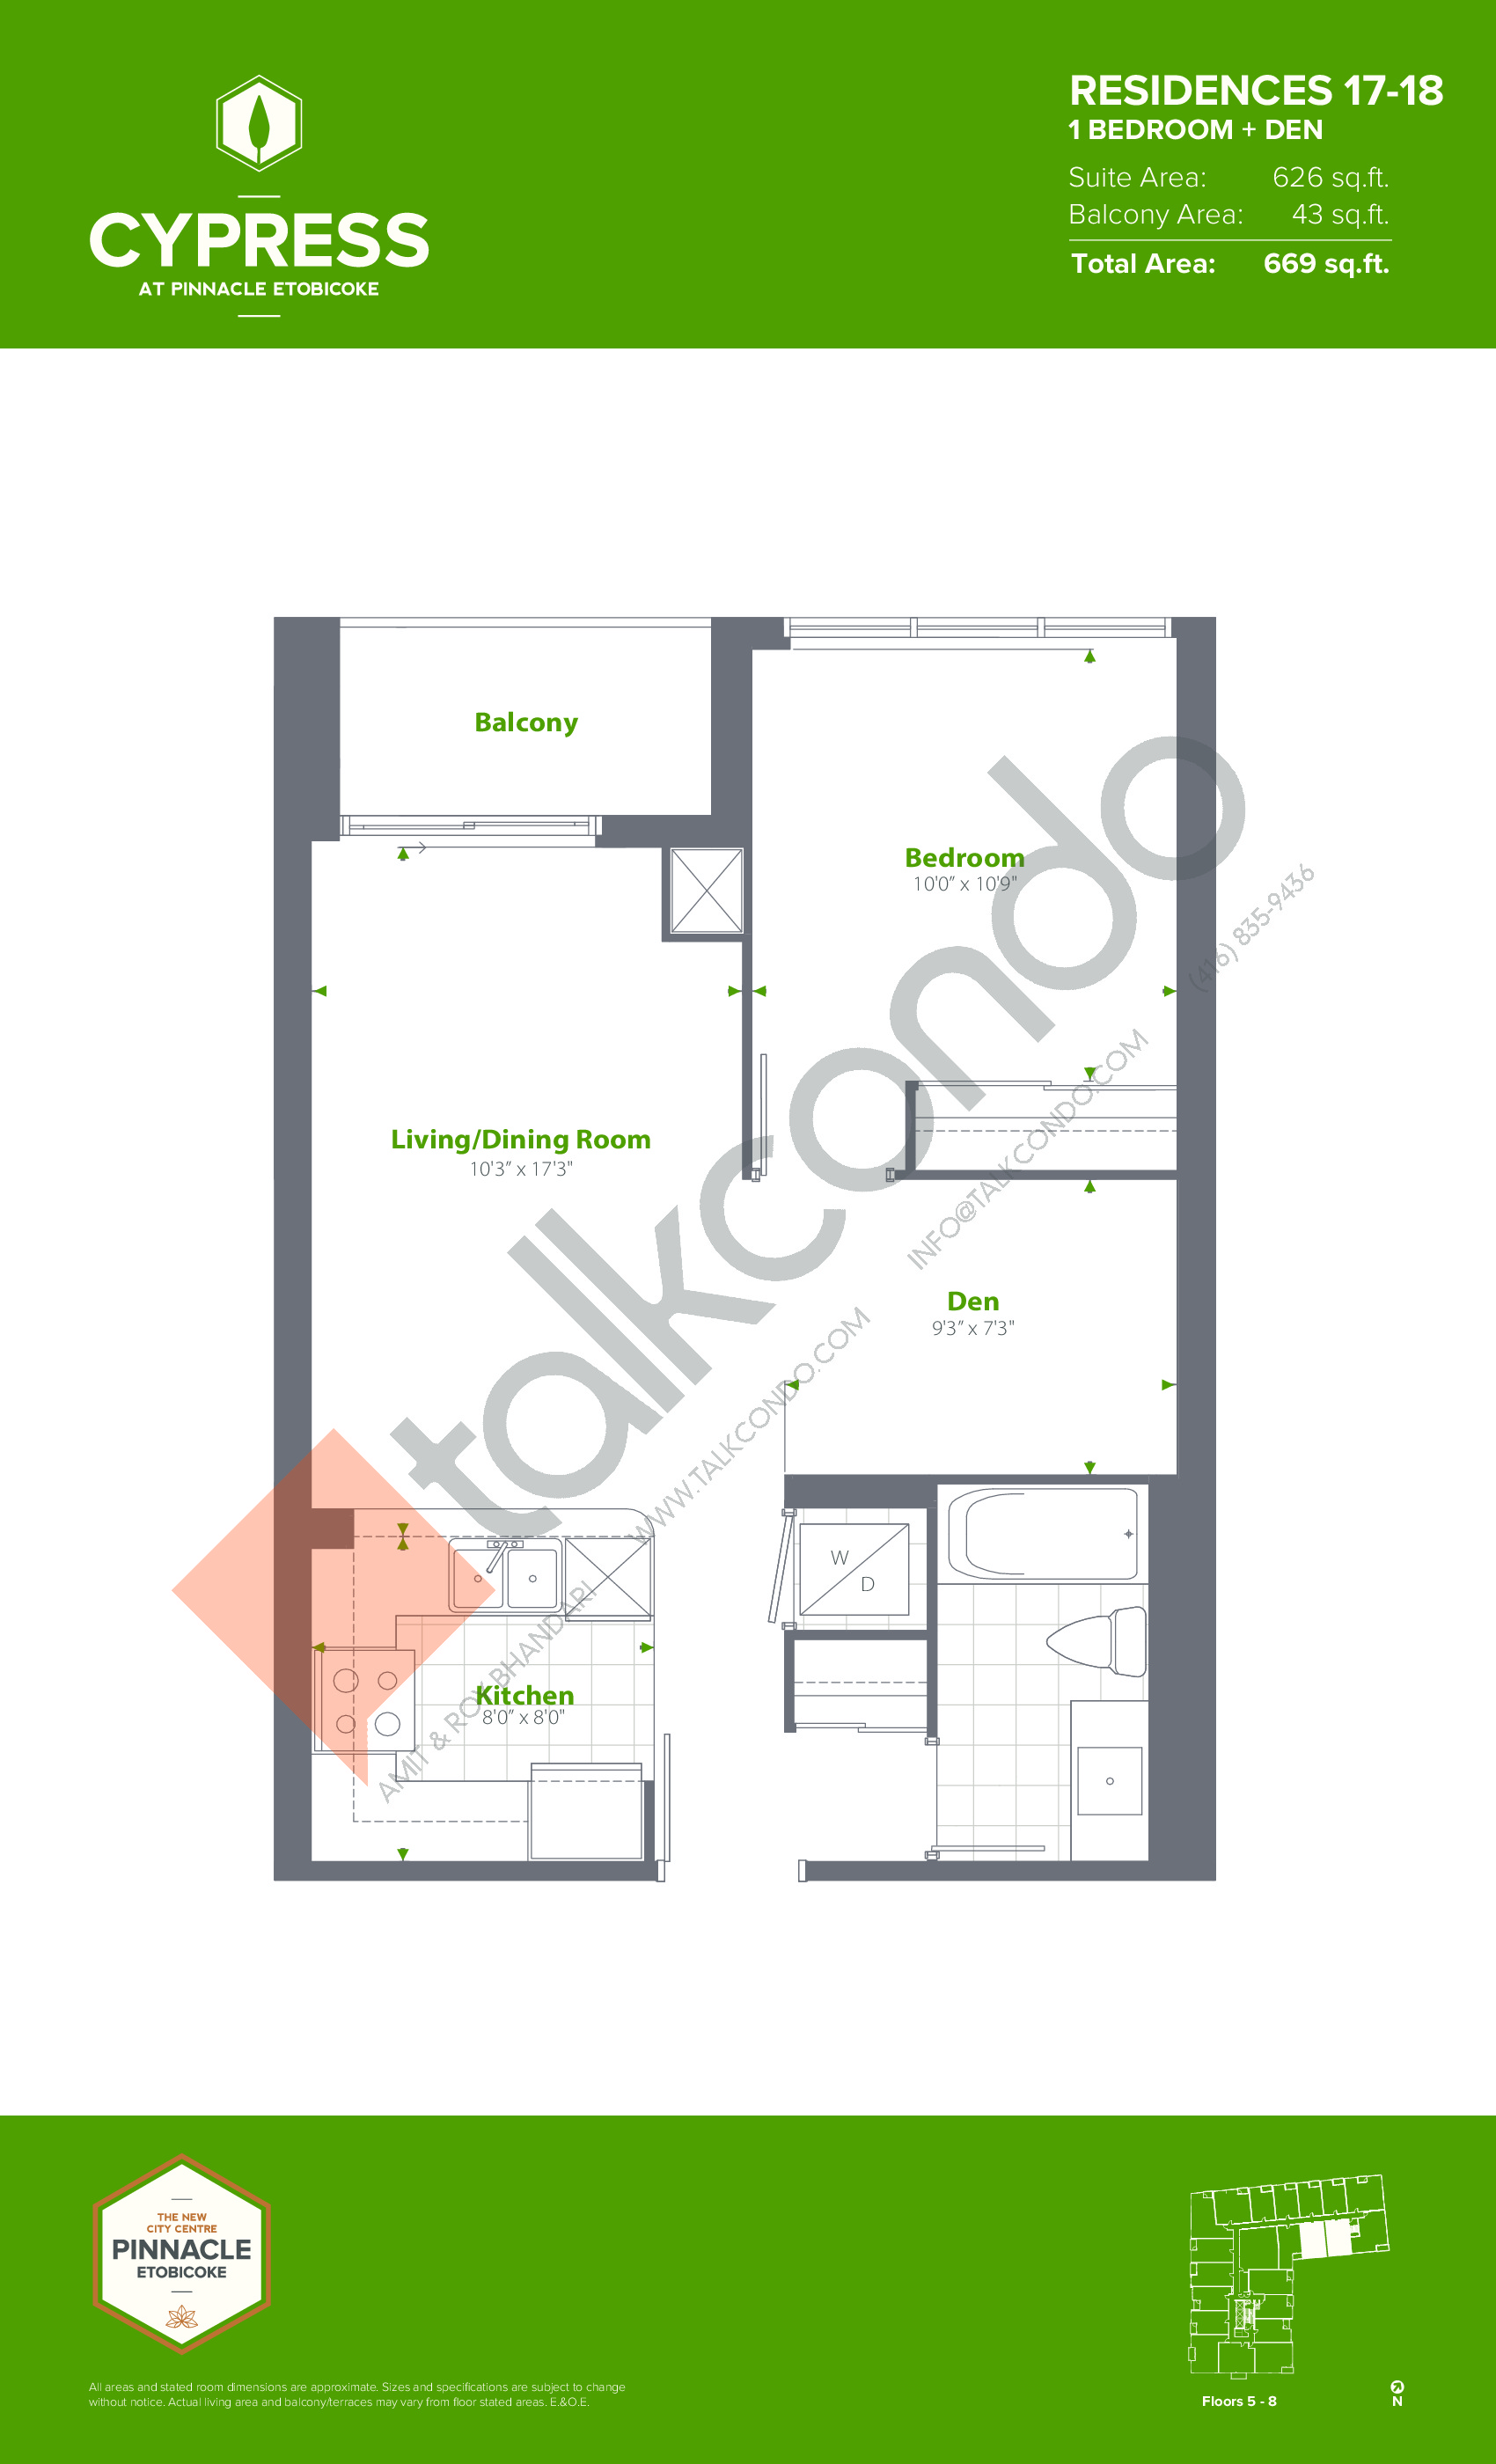 Residences 17-18 (Podium) Floor Plan at Cypress at Pinnacle Etobicoke - 626 sq.ft